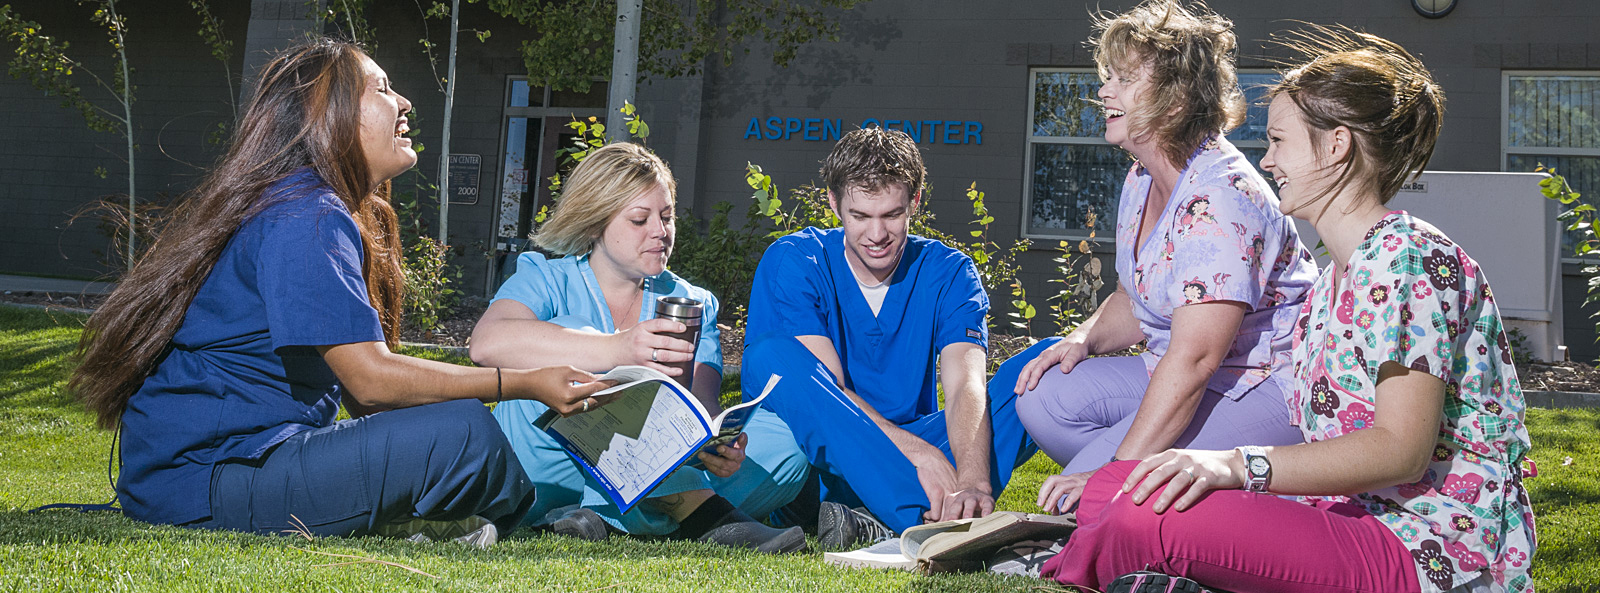 healthcare students sitting on campus lawn